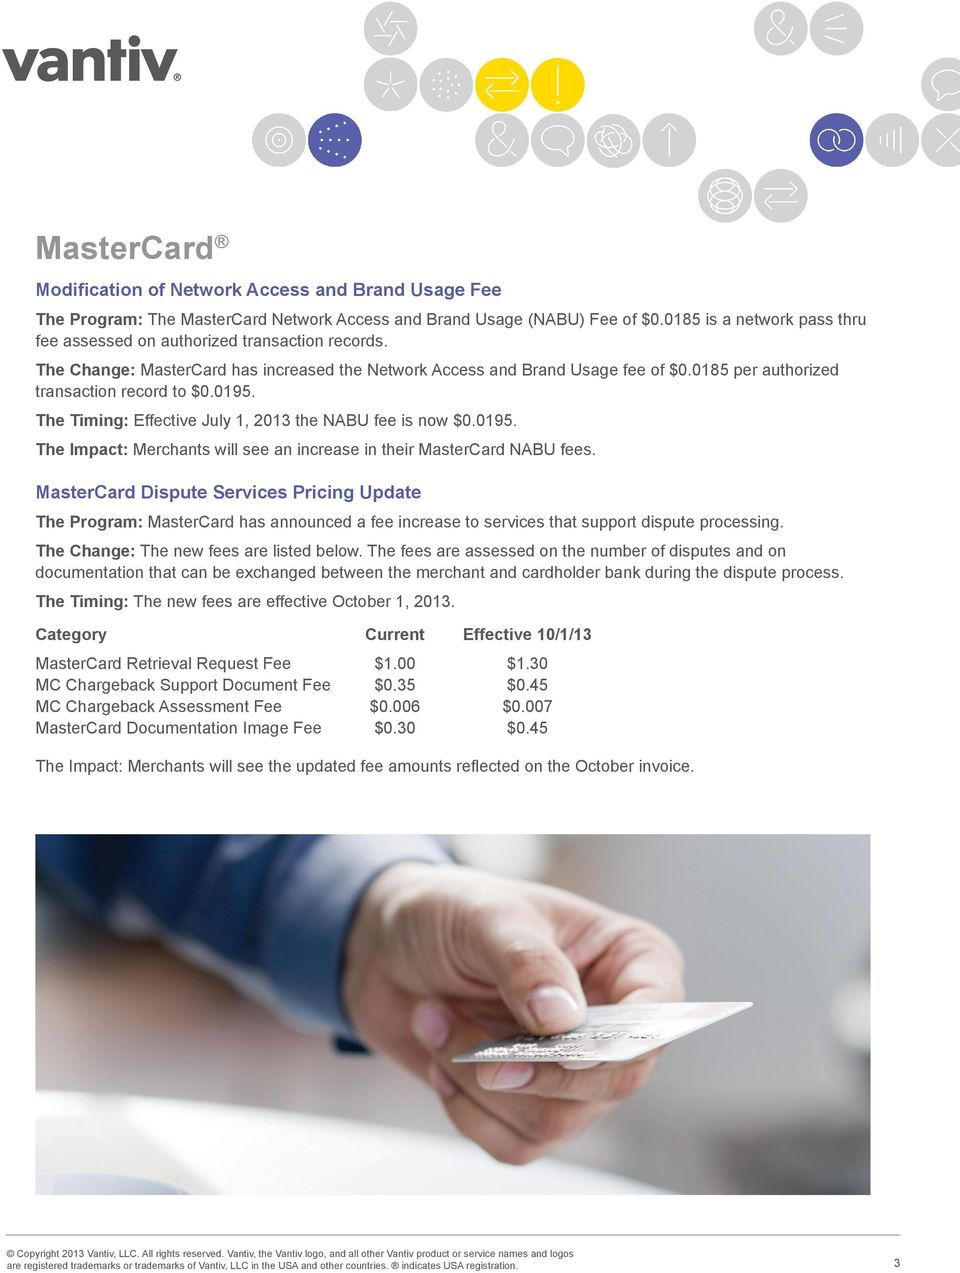 0185 per authorized transaction record to $0.0195. The Timing: Effective July 1, 2013 the NABU fee is now $0.0195. The Impact: Merchants will see an increase in their MasterCard NABU fees.